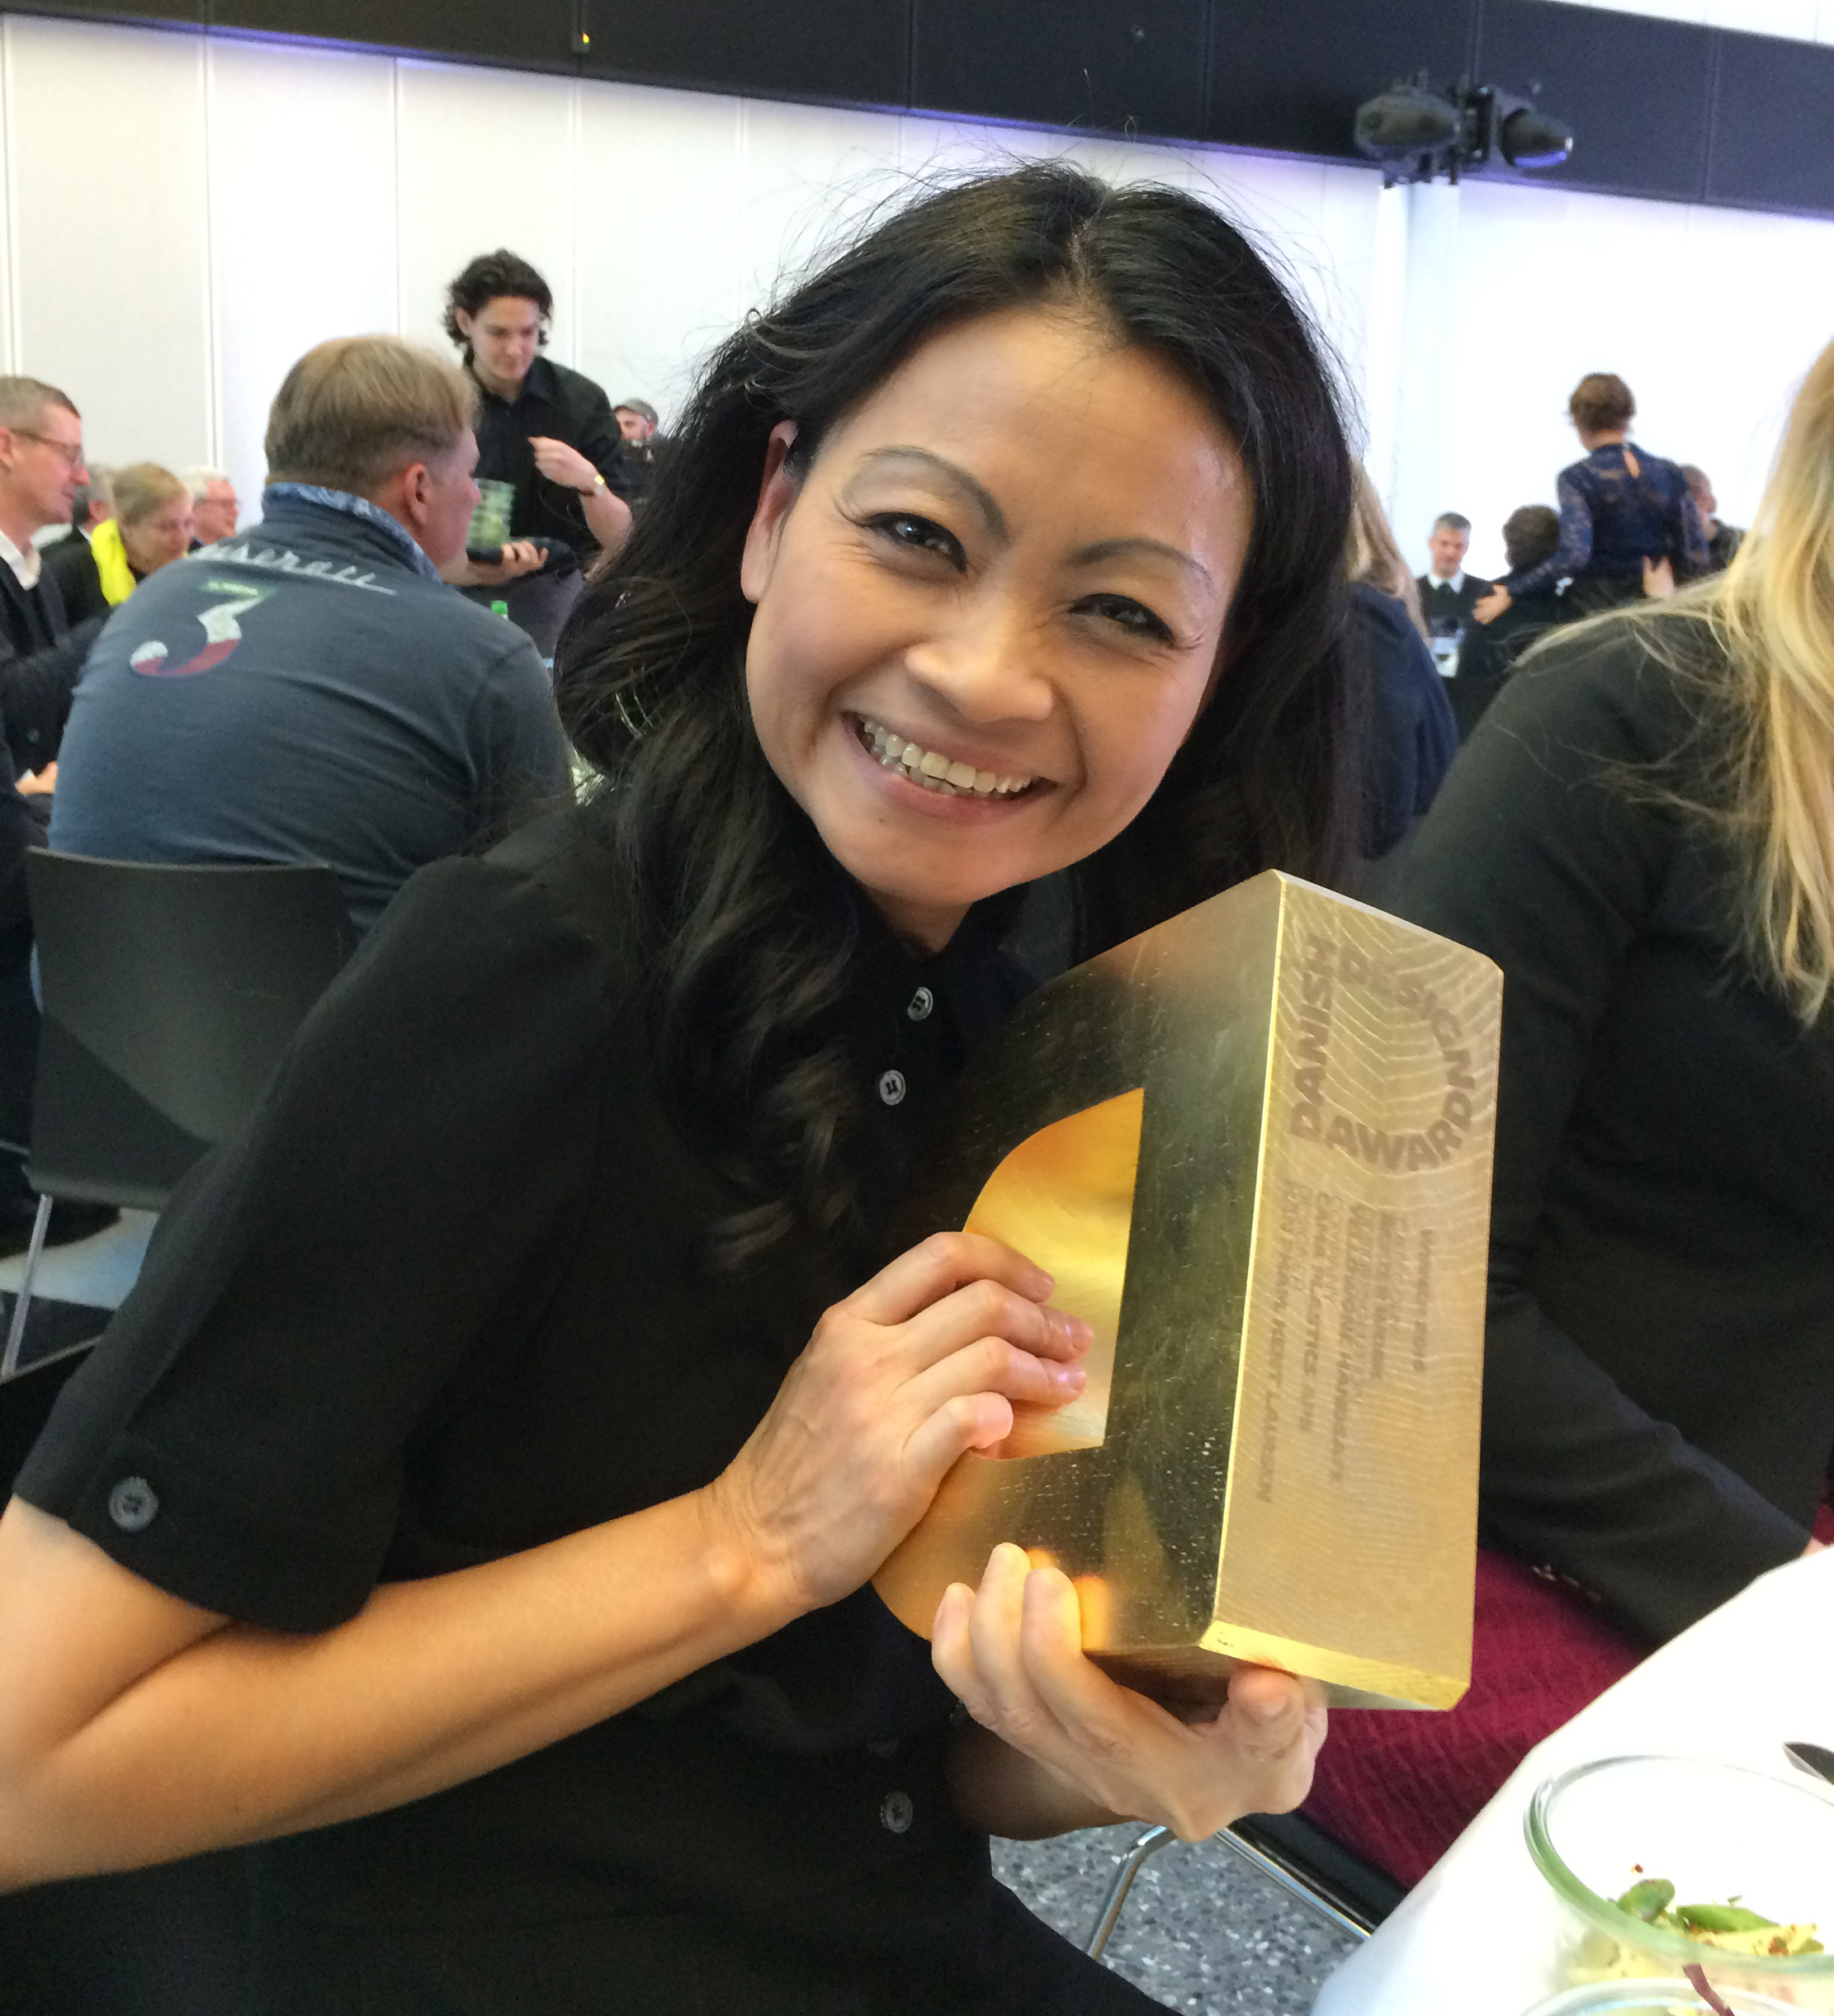 Han Pham with The Danish Design Award 2016